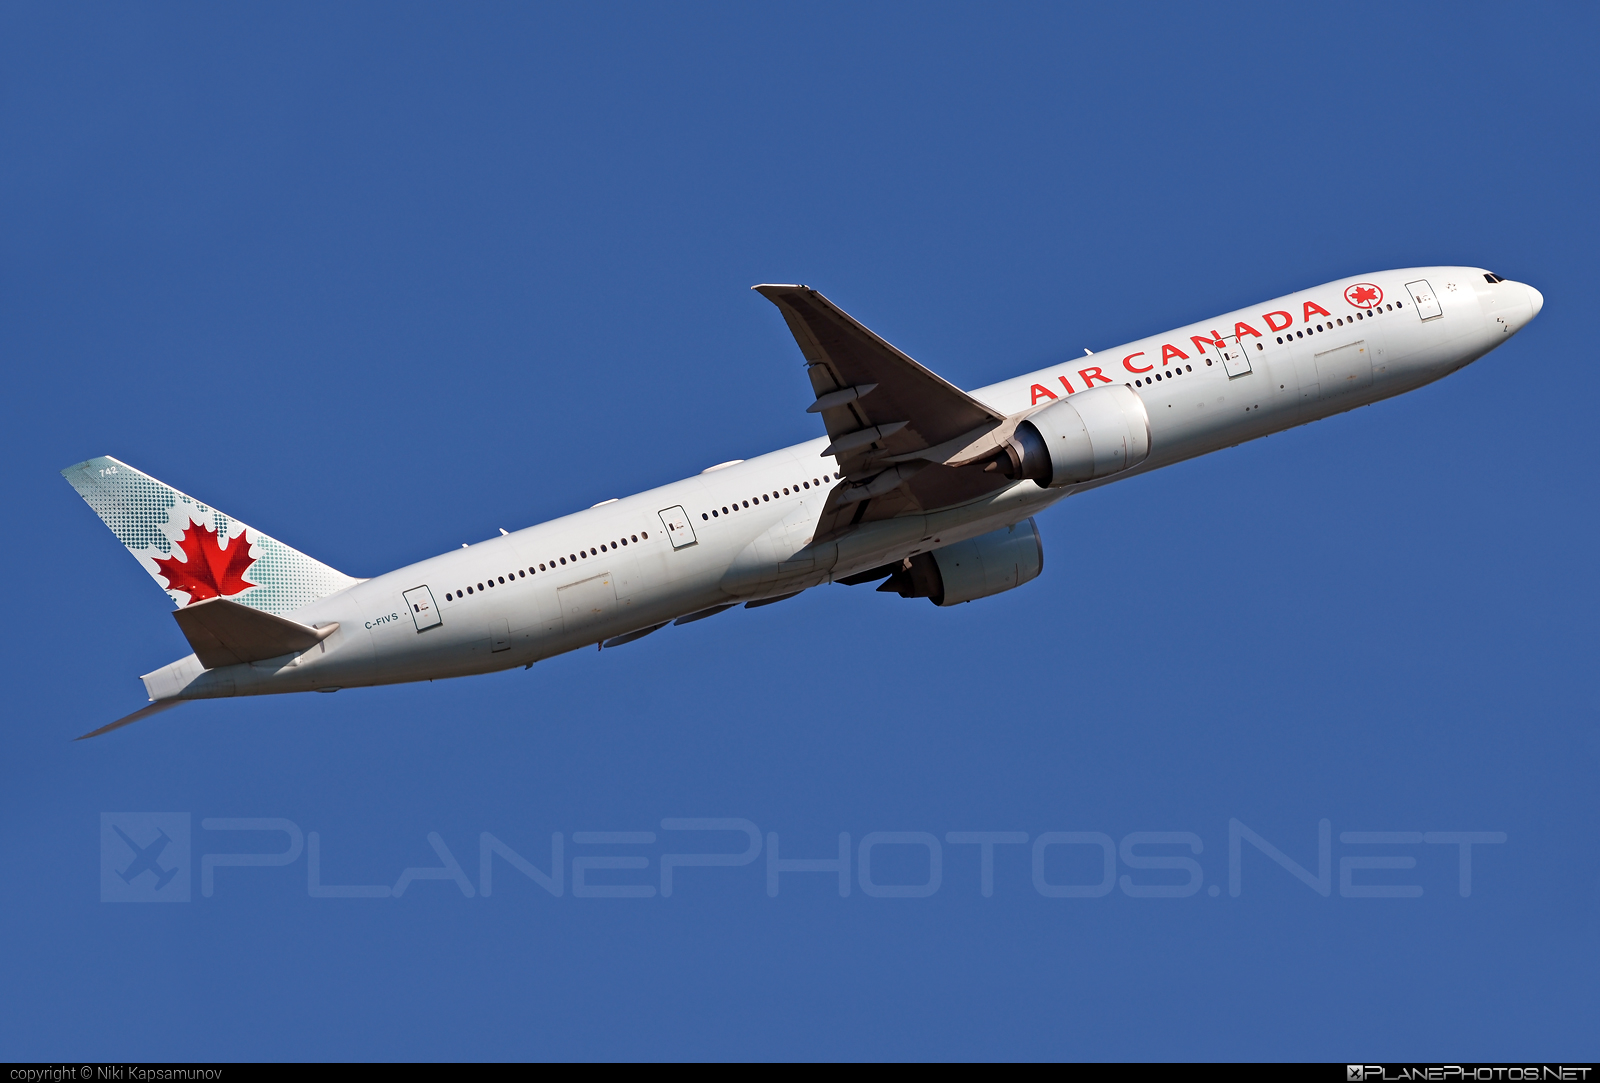 Boeing 777-300ER - C-FIVS operated by Air Canada #aircanada #b777 #b777er #boeing #boeing777 #tripleseven